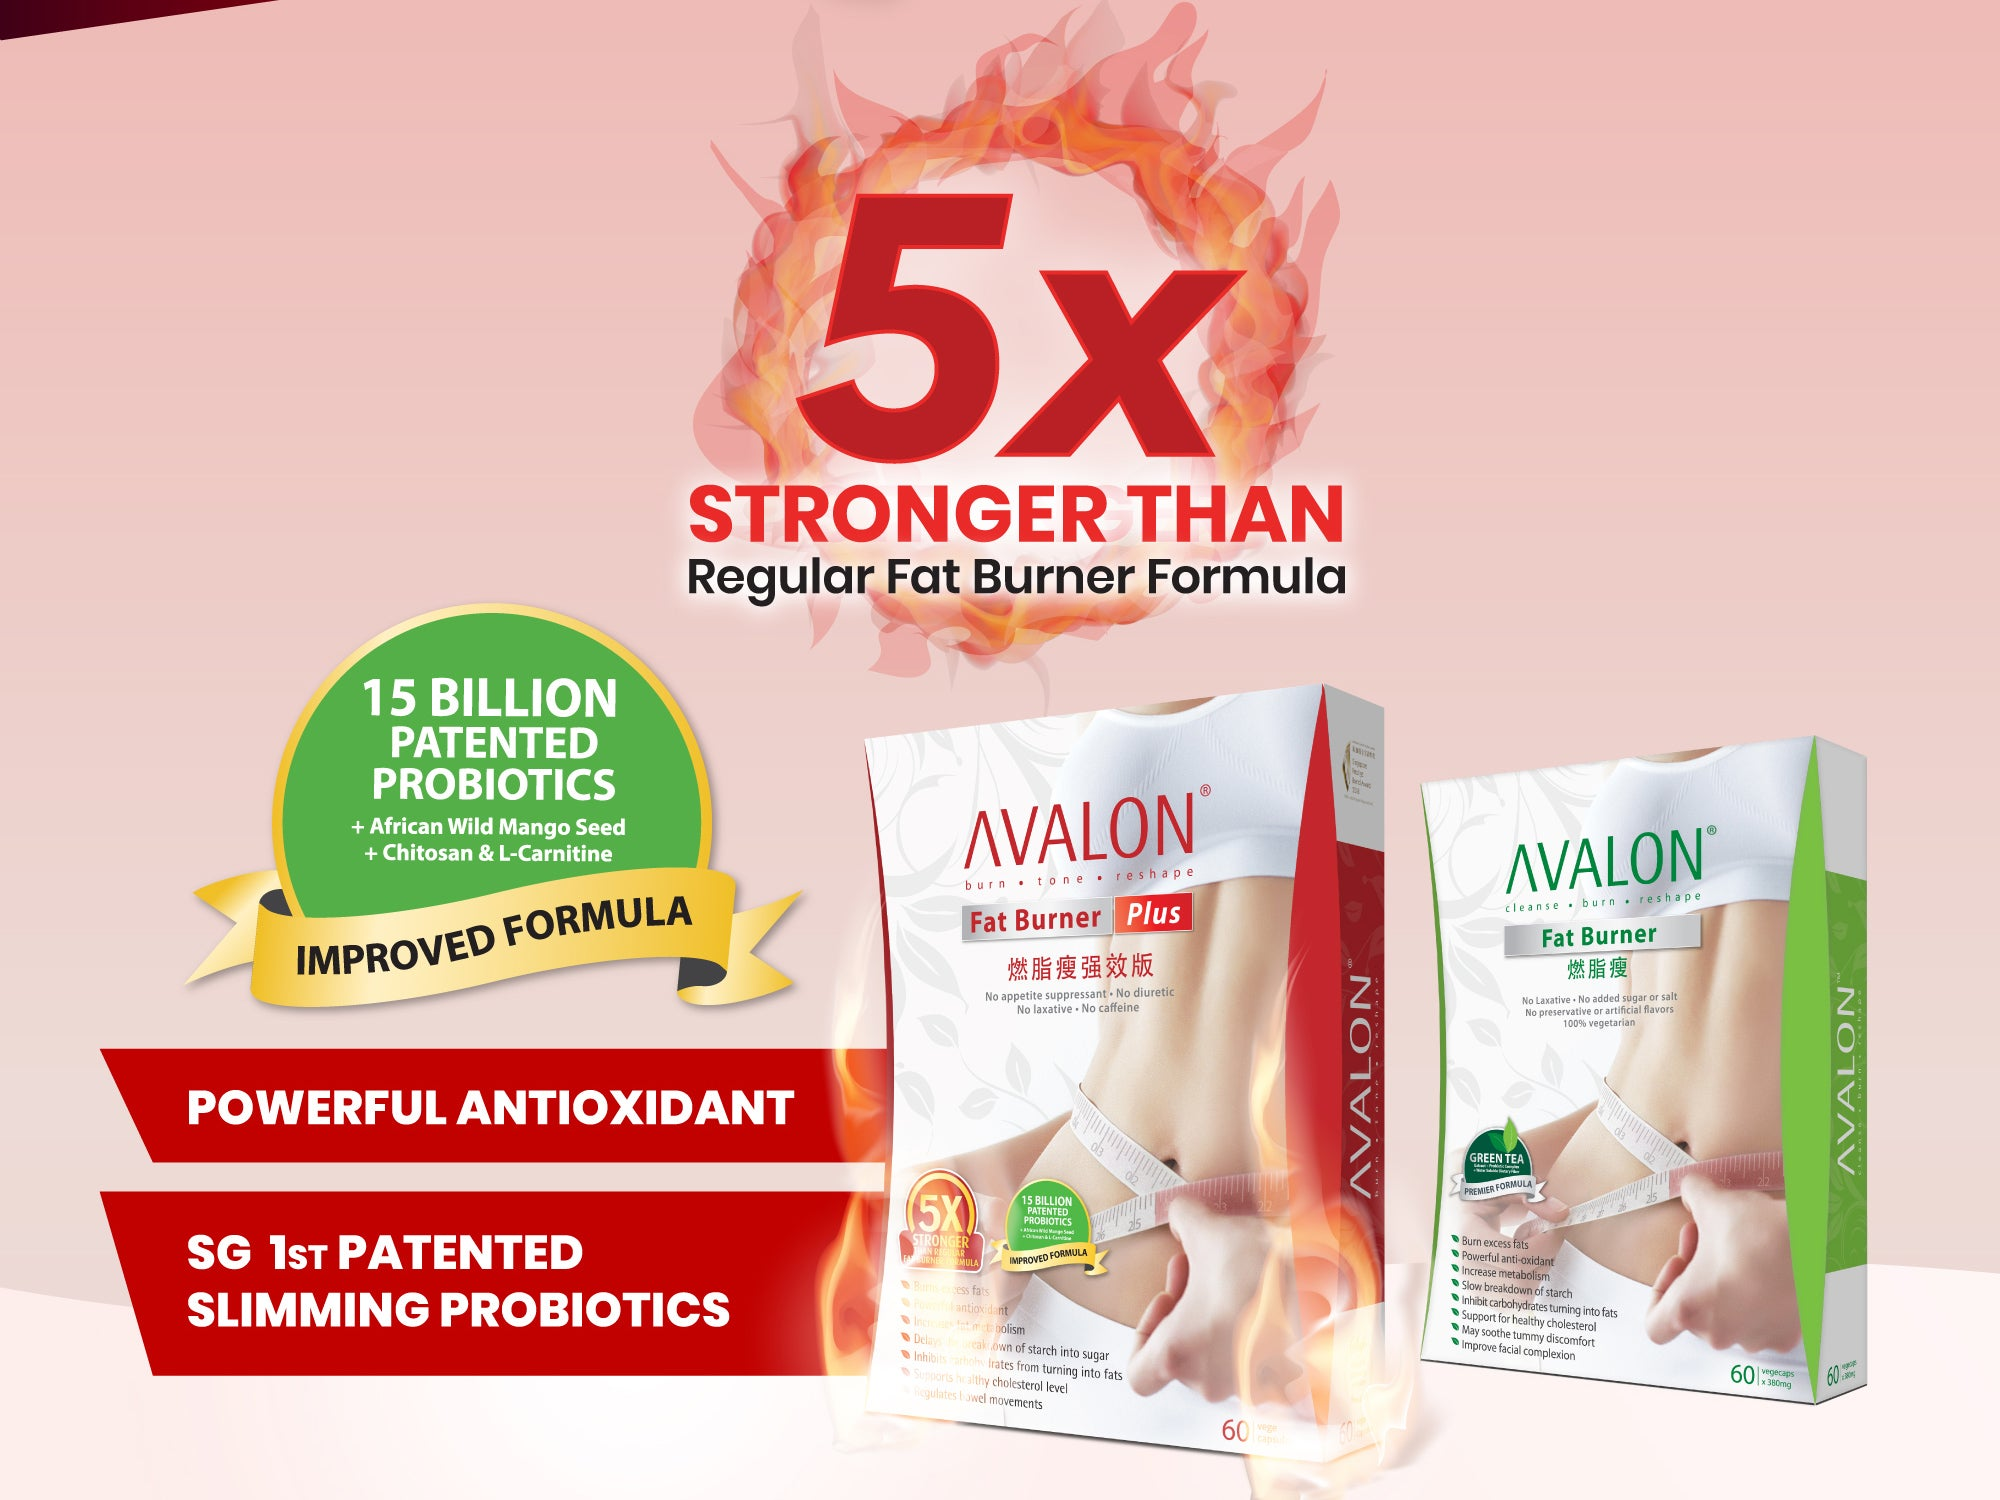 AVALON® Fat Burner Plus Improved Formula is proven to be 5 times stronger than regular fat burning formulas. It is a powerful antioxidant formula that is enhanced with 1.5 billion Singapore first patented slimming probiotics to help regulate bowel movements.